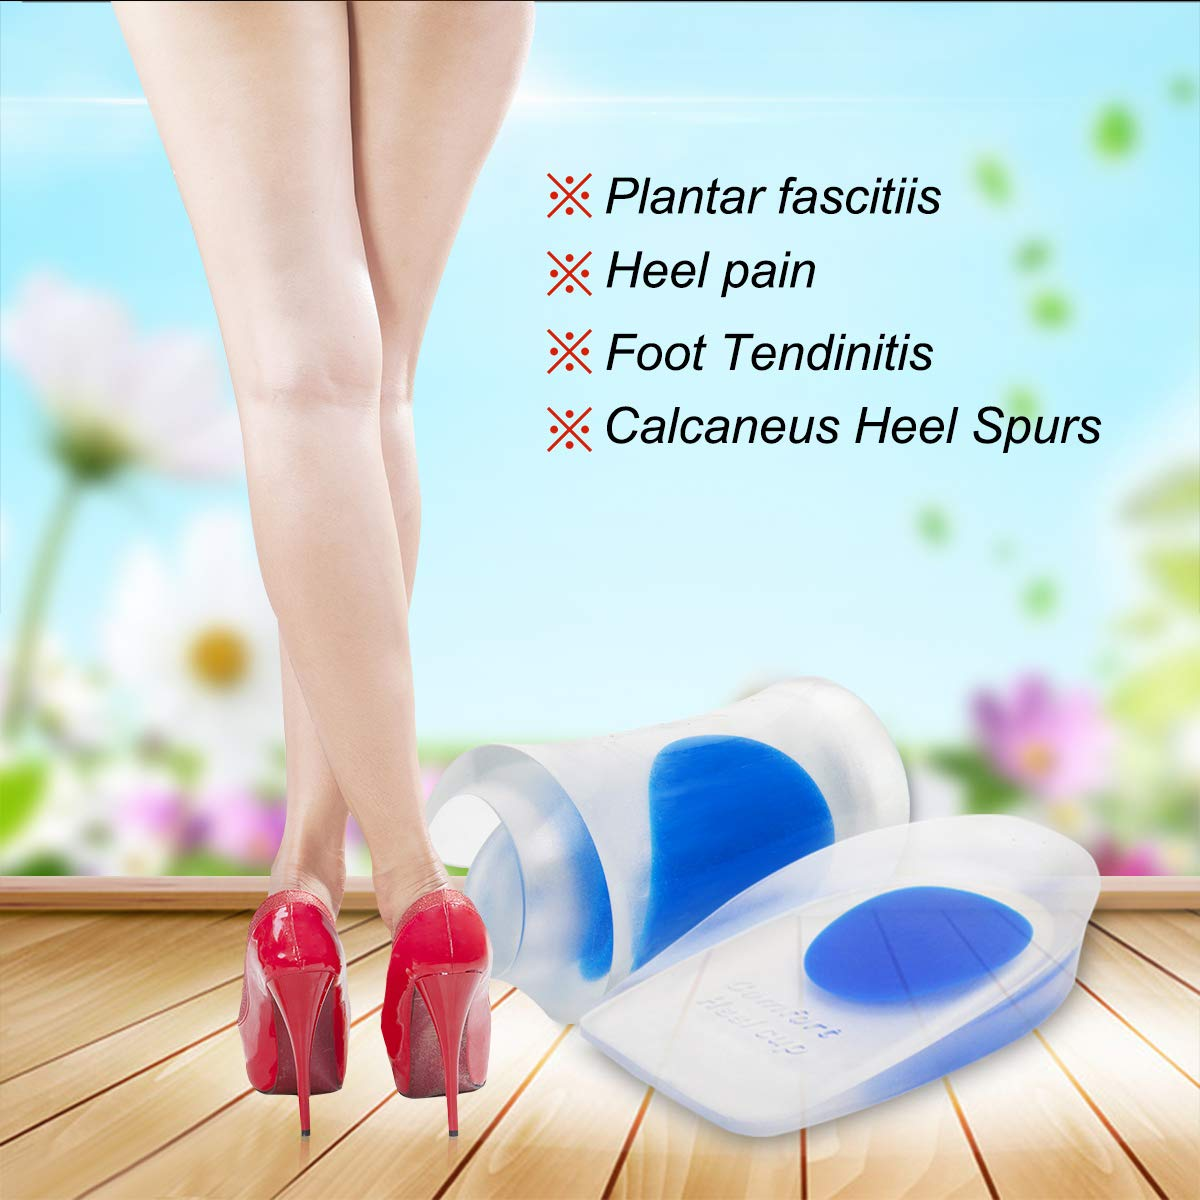 HLYOON® H11 Silicone+PU GEL Heel Cups - Inserts for Heel Spur, Plantar Fasciitis and Heel Pain Relieve - 2 Pairs